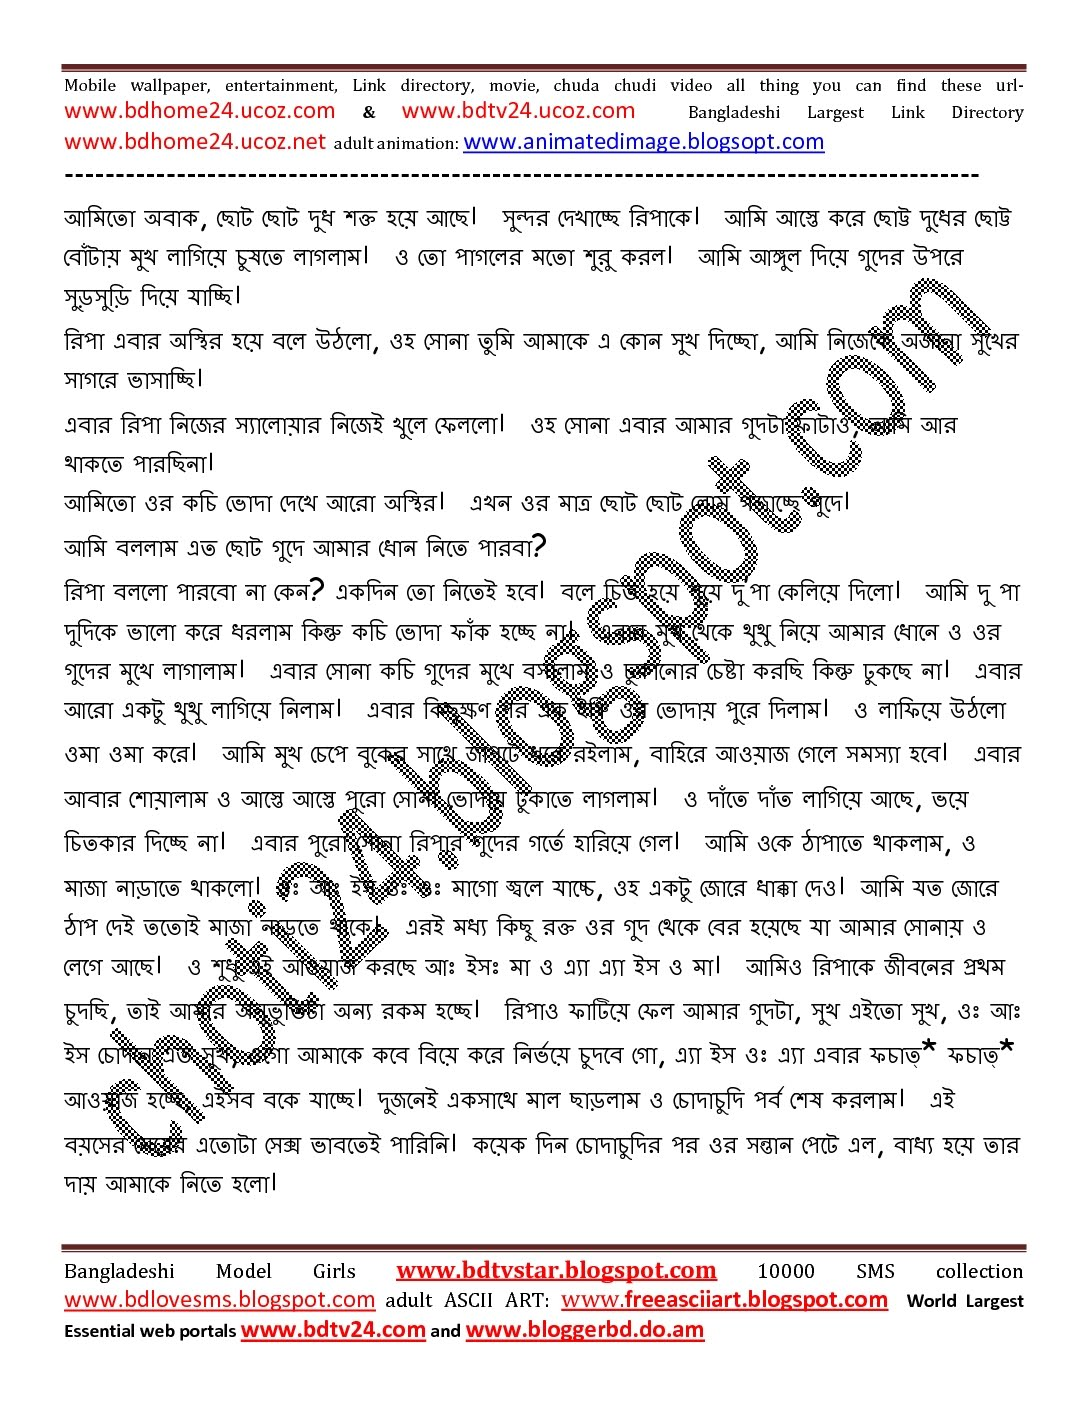 Indian Bangla Choti Golpo